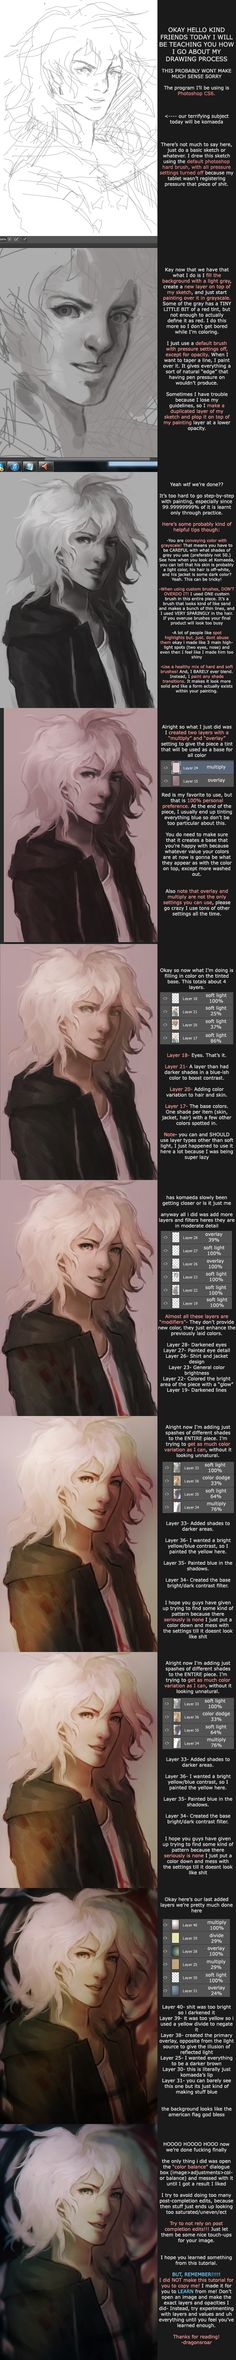 Grayscale Coloring and Painting: How I Draw by Dragons-Roar.deviantart.com on @deviantART (there is a bit of language mixed in here but a great tutorial)